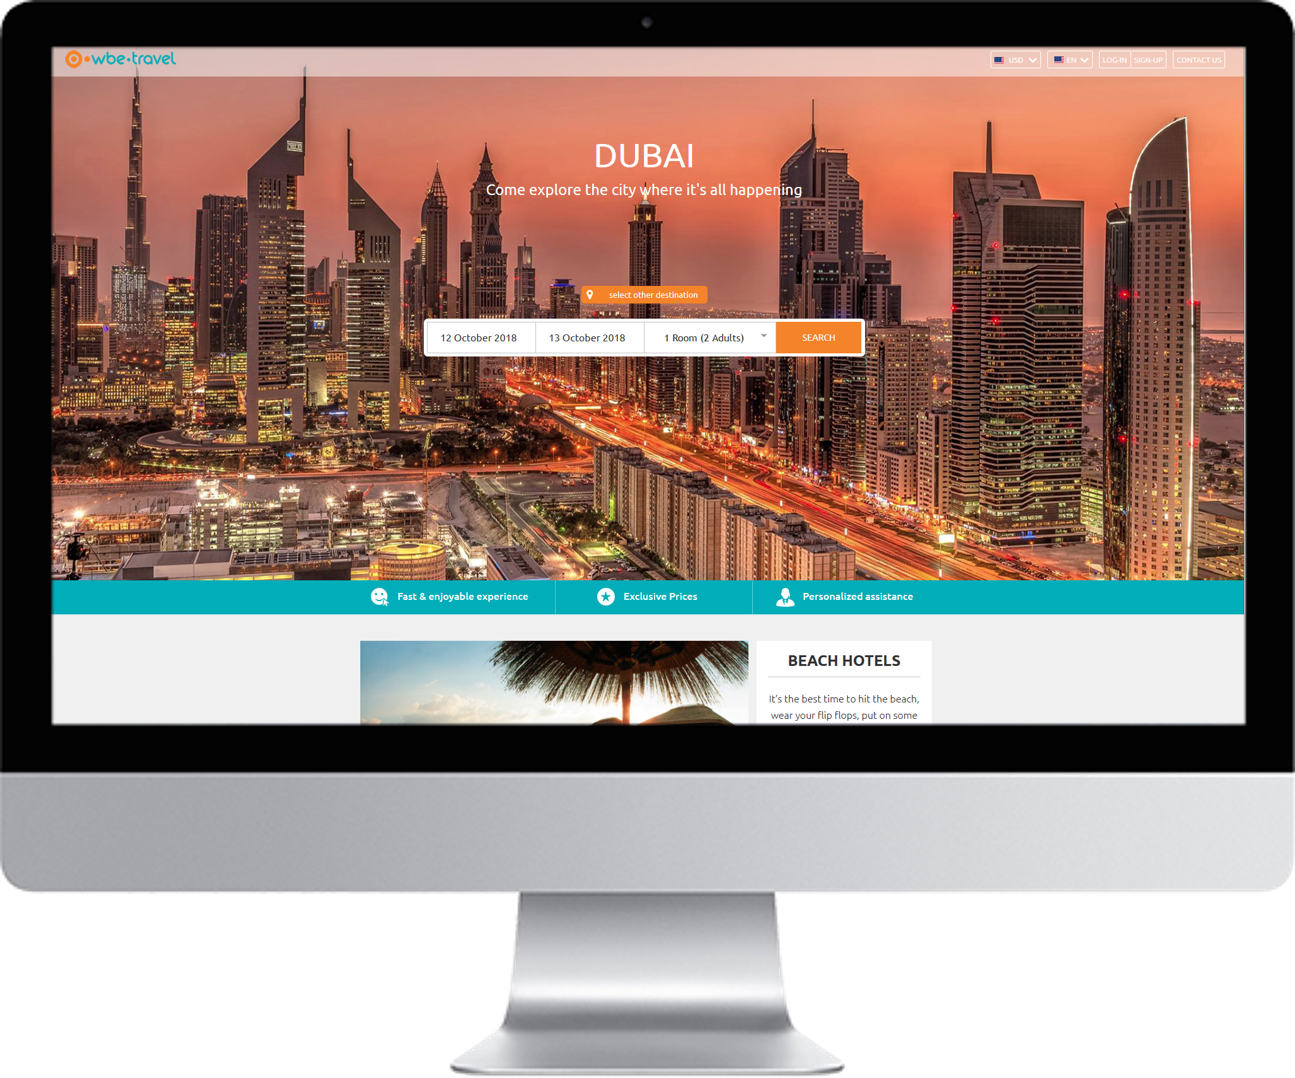 wbe.travel Content Management System - CMS